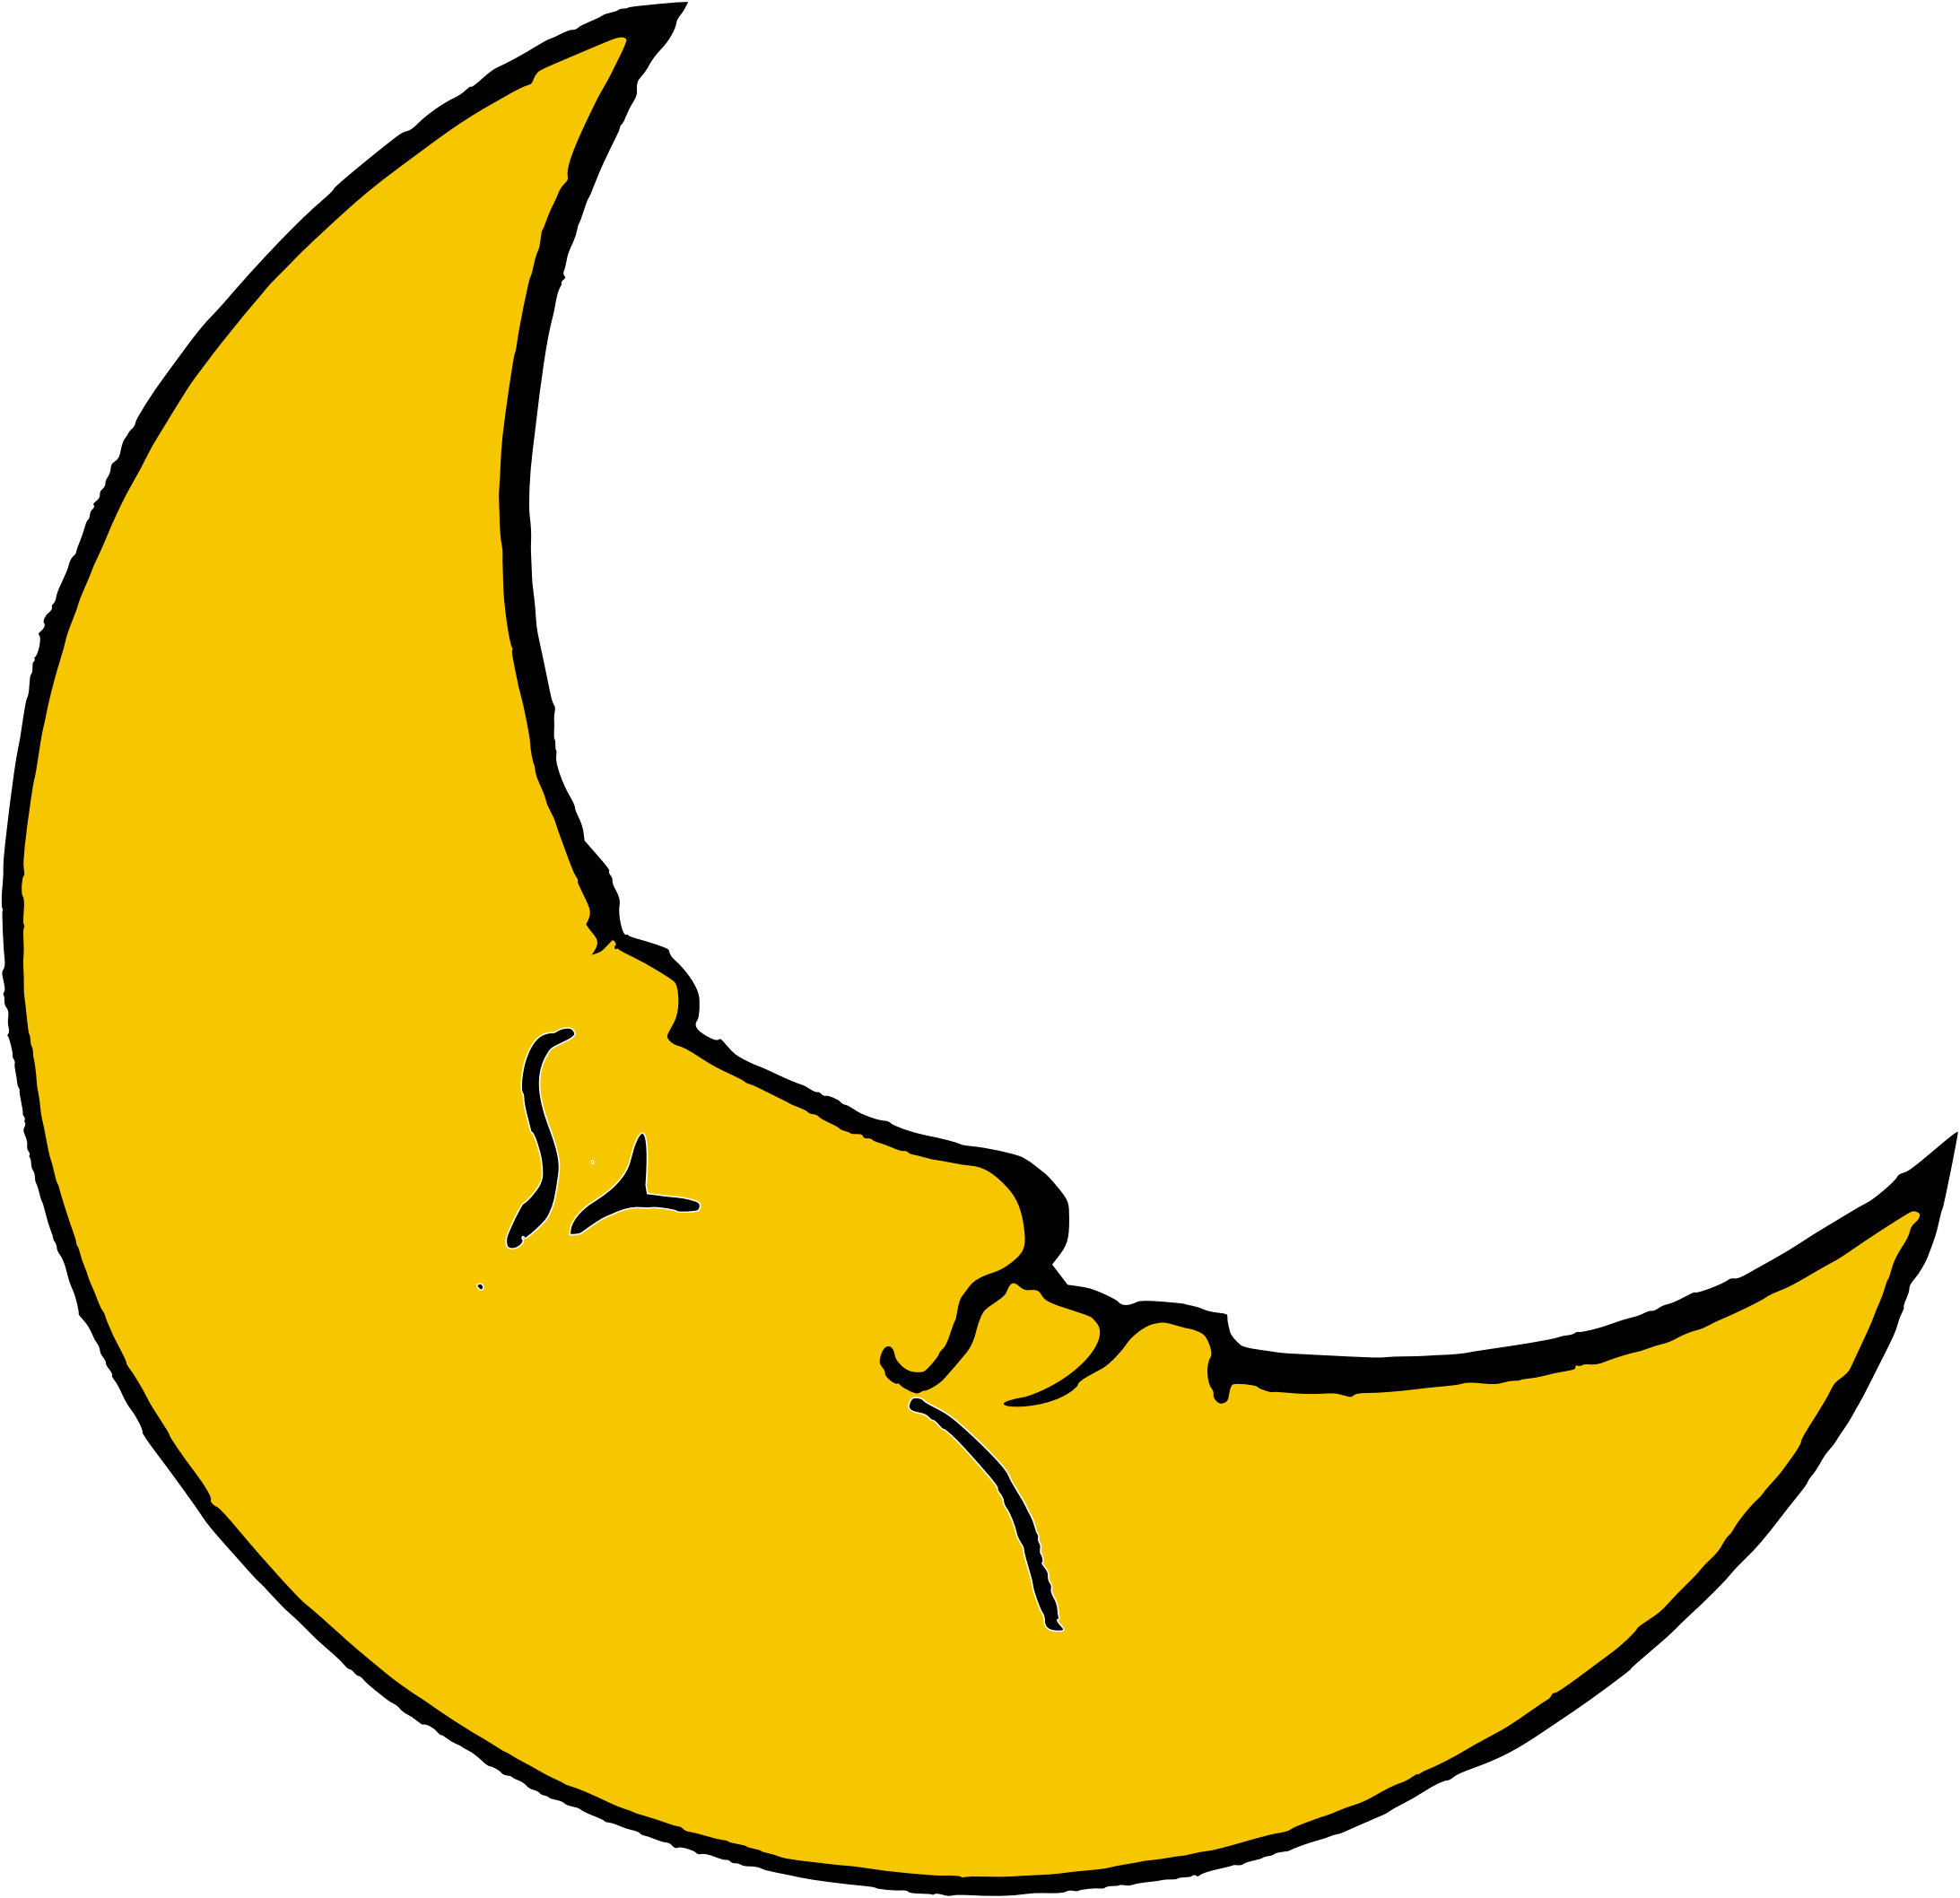 Crescent clipart half moon. Transparent png stickpng smiling